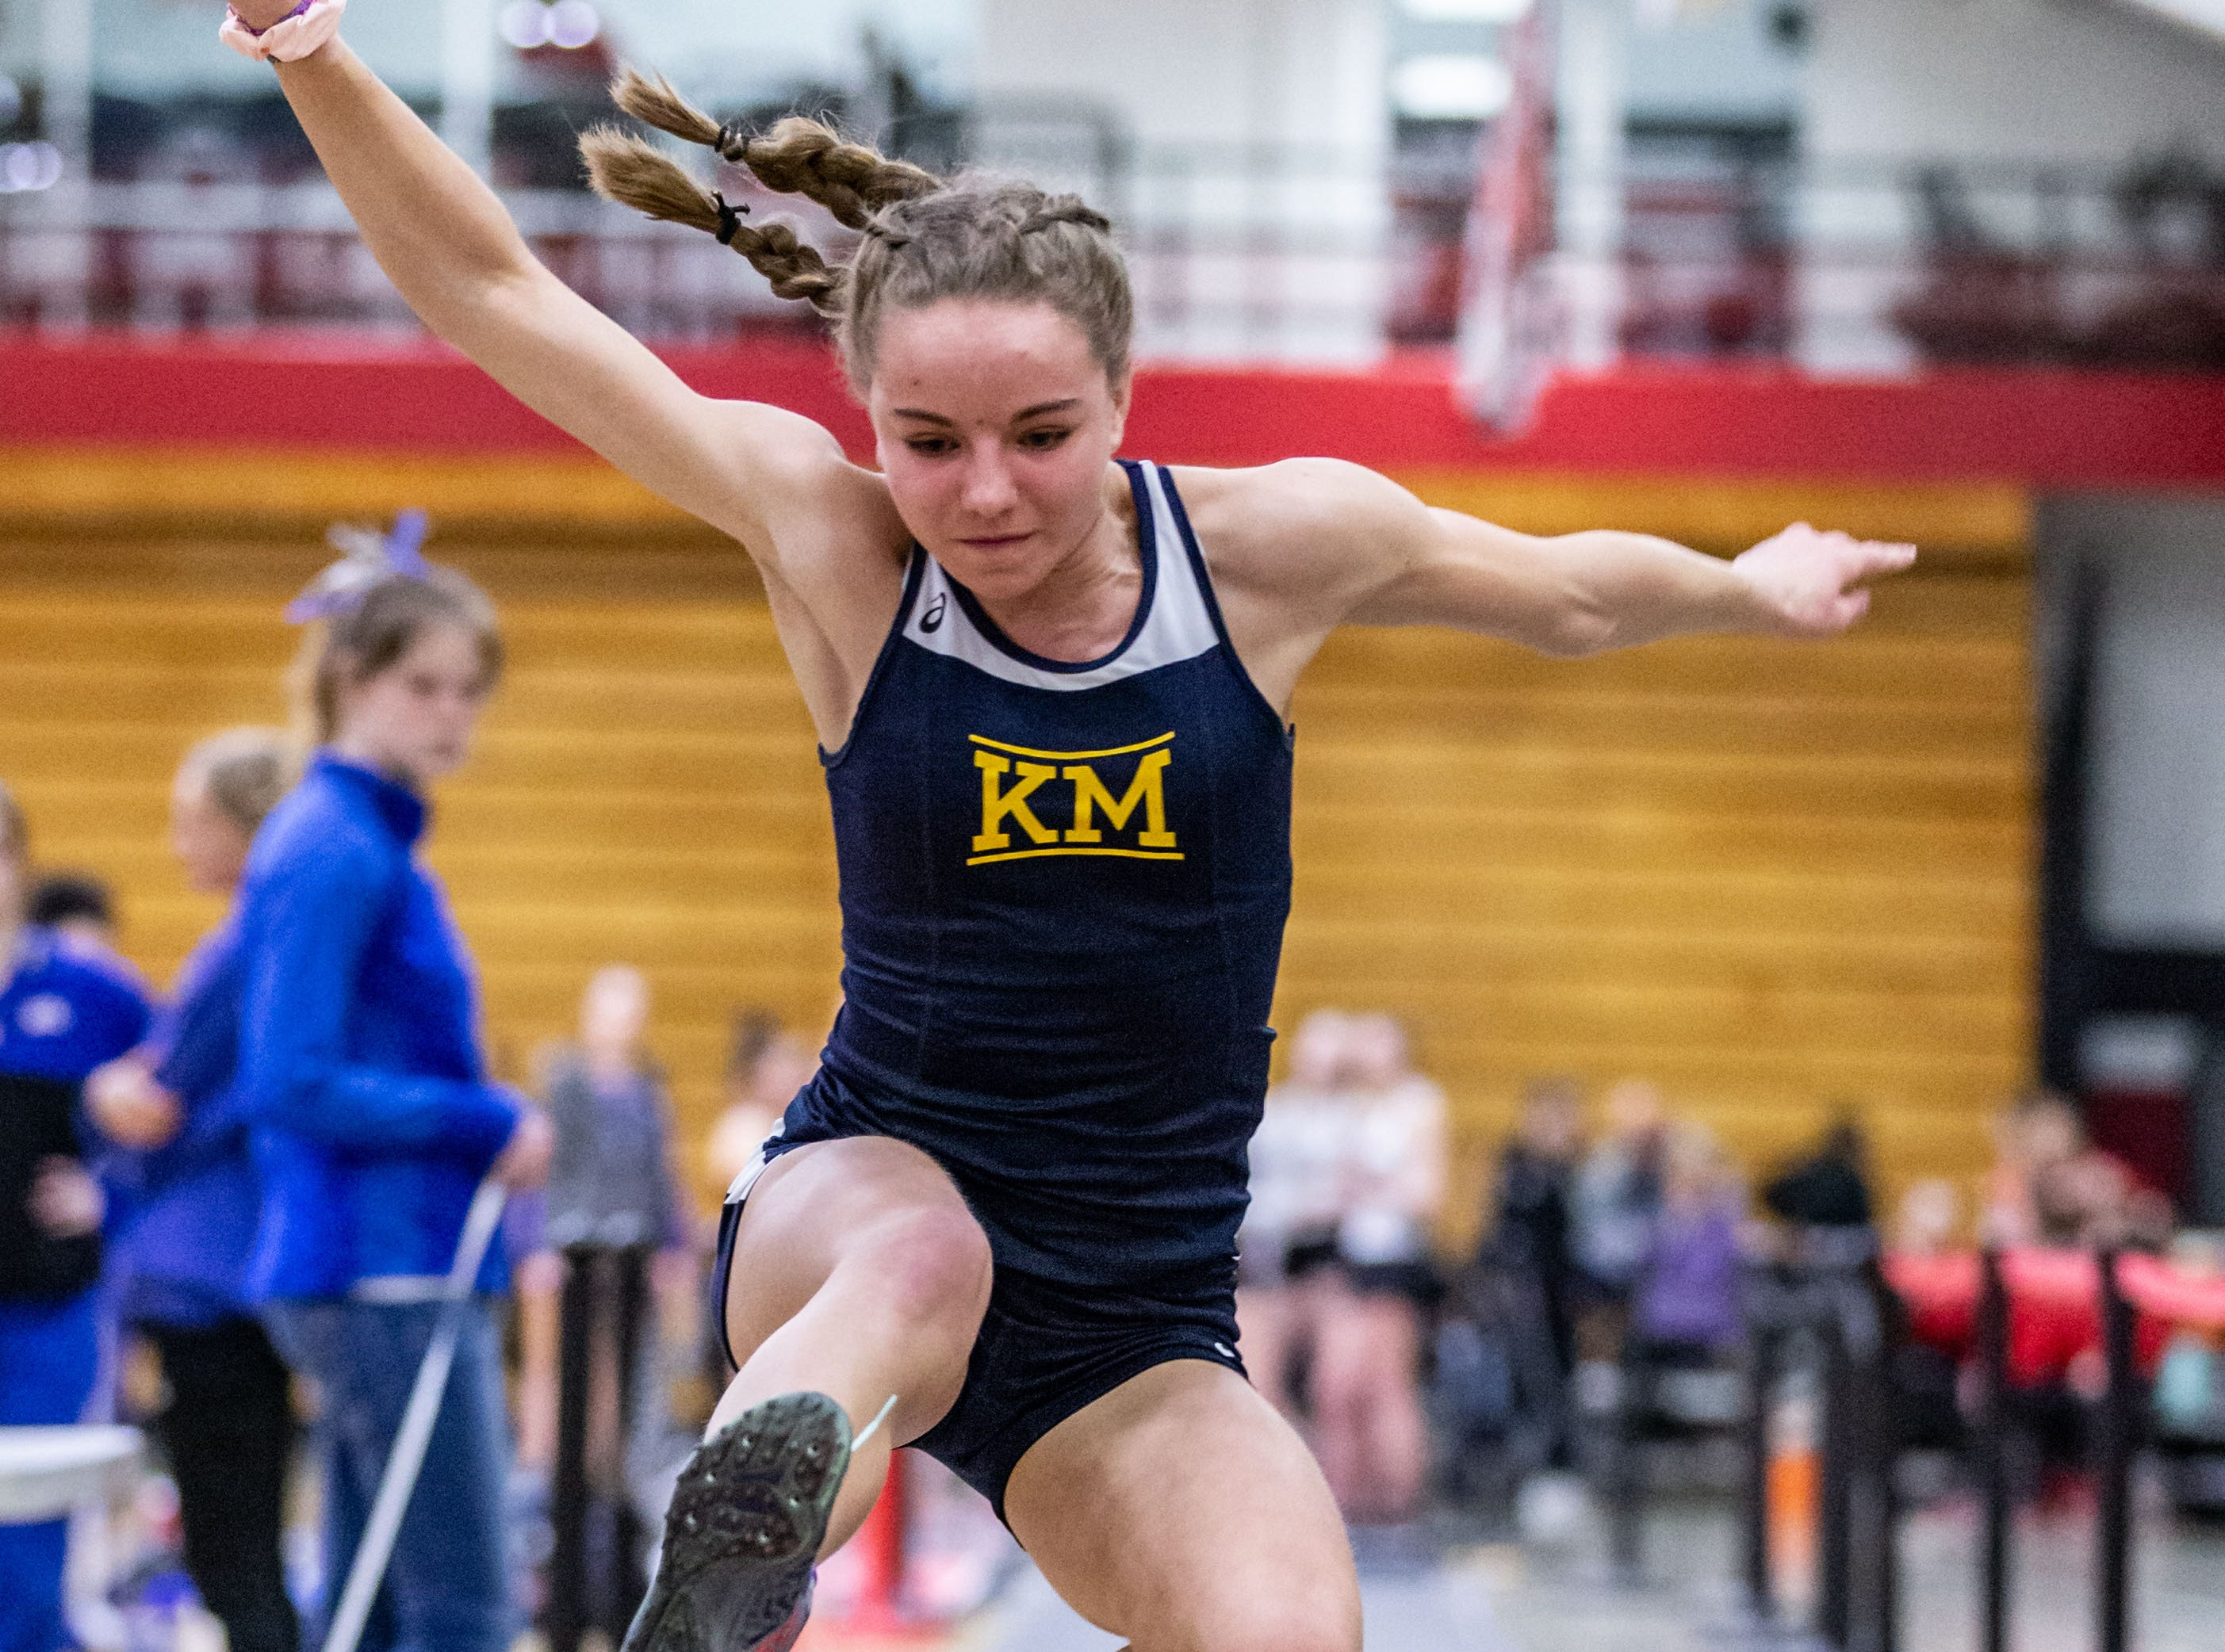 Kettle Moraine's Kayden Kruchoski competes in the triple jump at the Peter Rempe Cardinal Relays hosted by Waukesha South on Thursday, March 21, 2019.